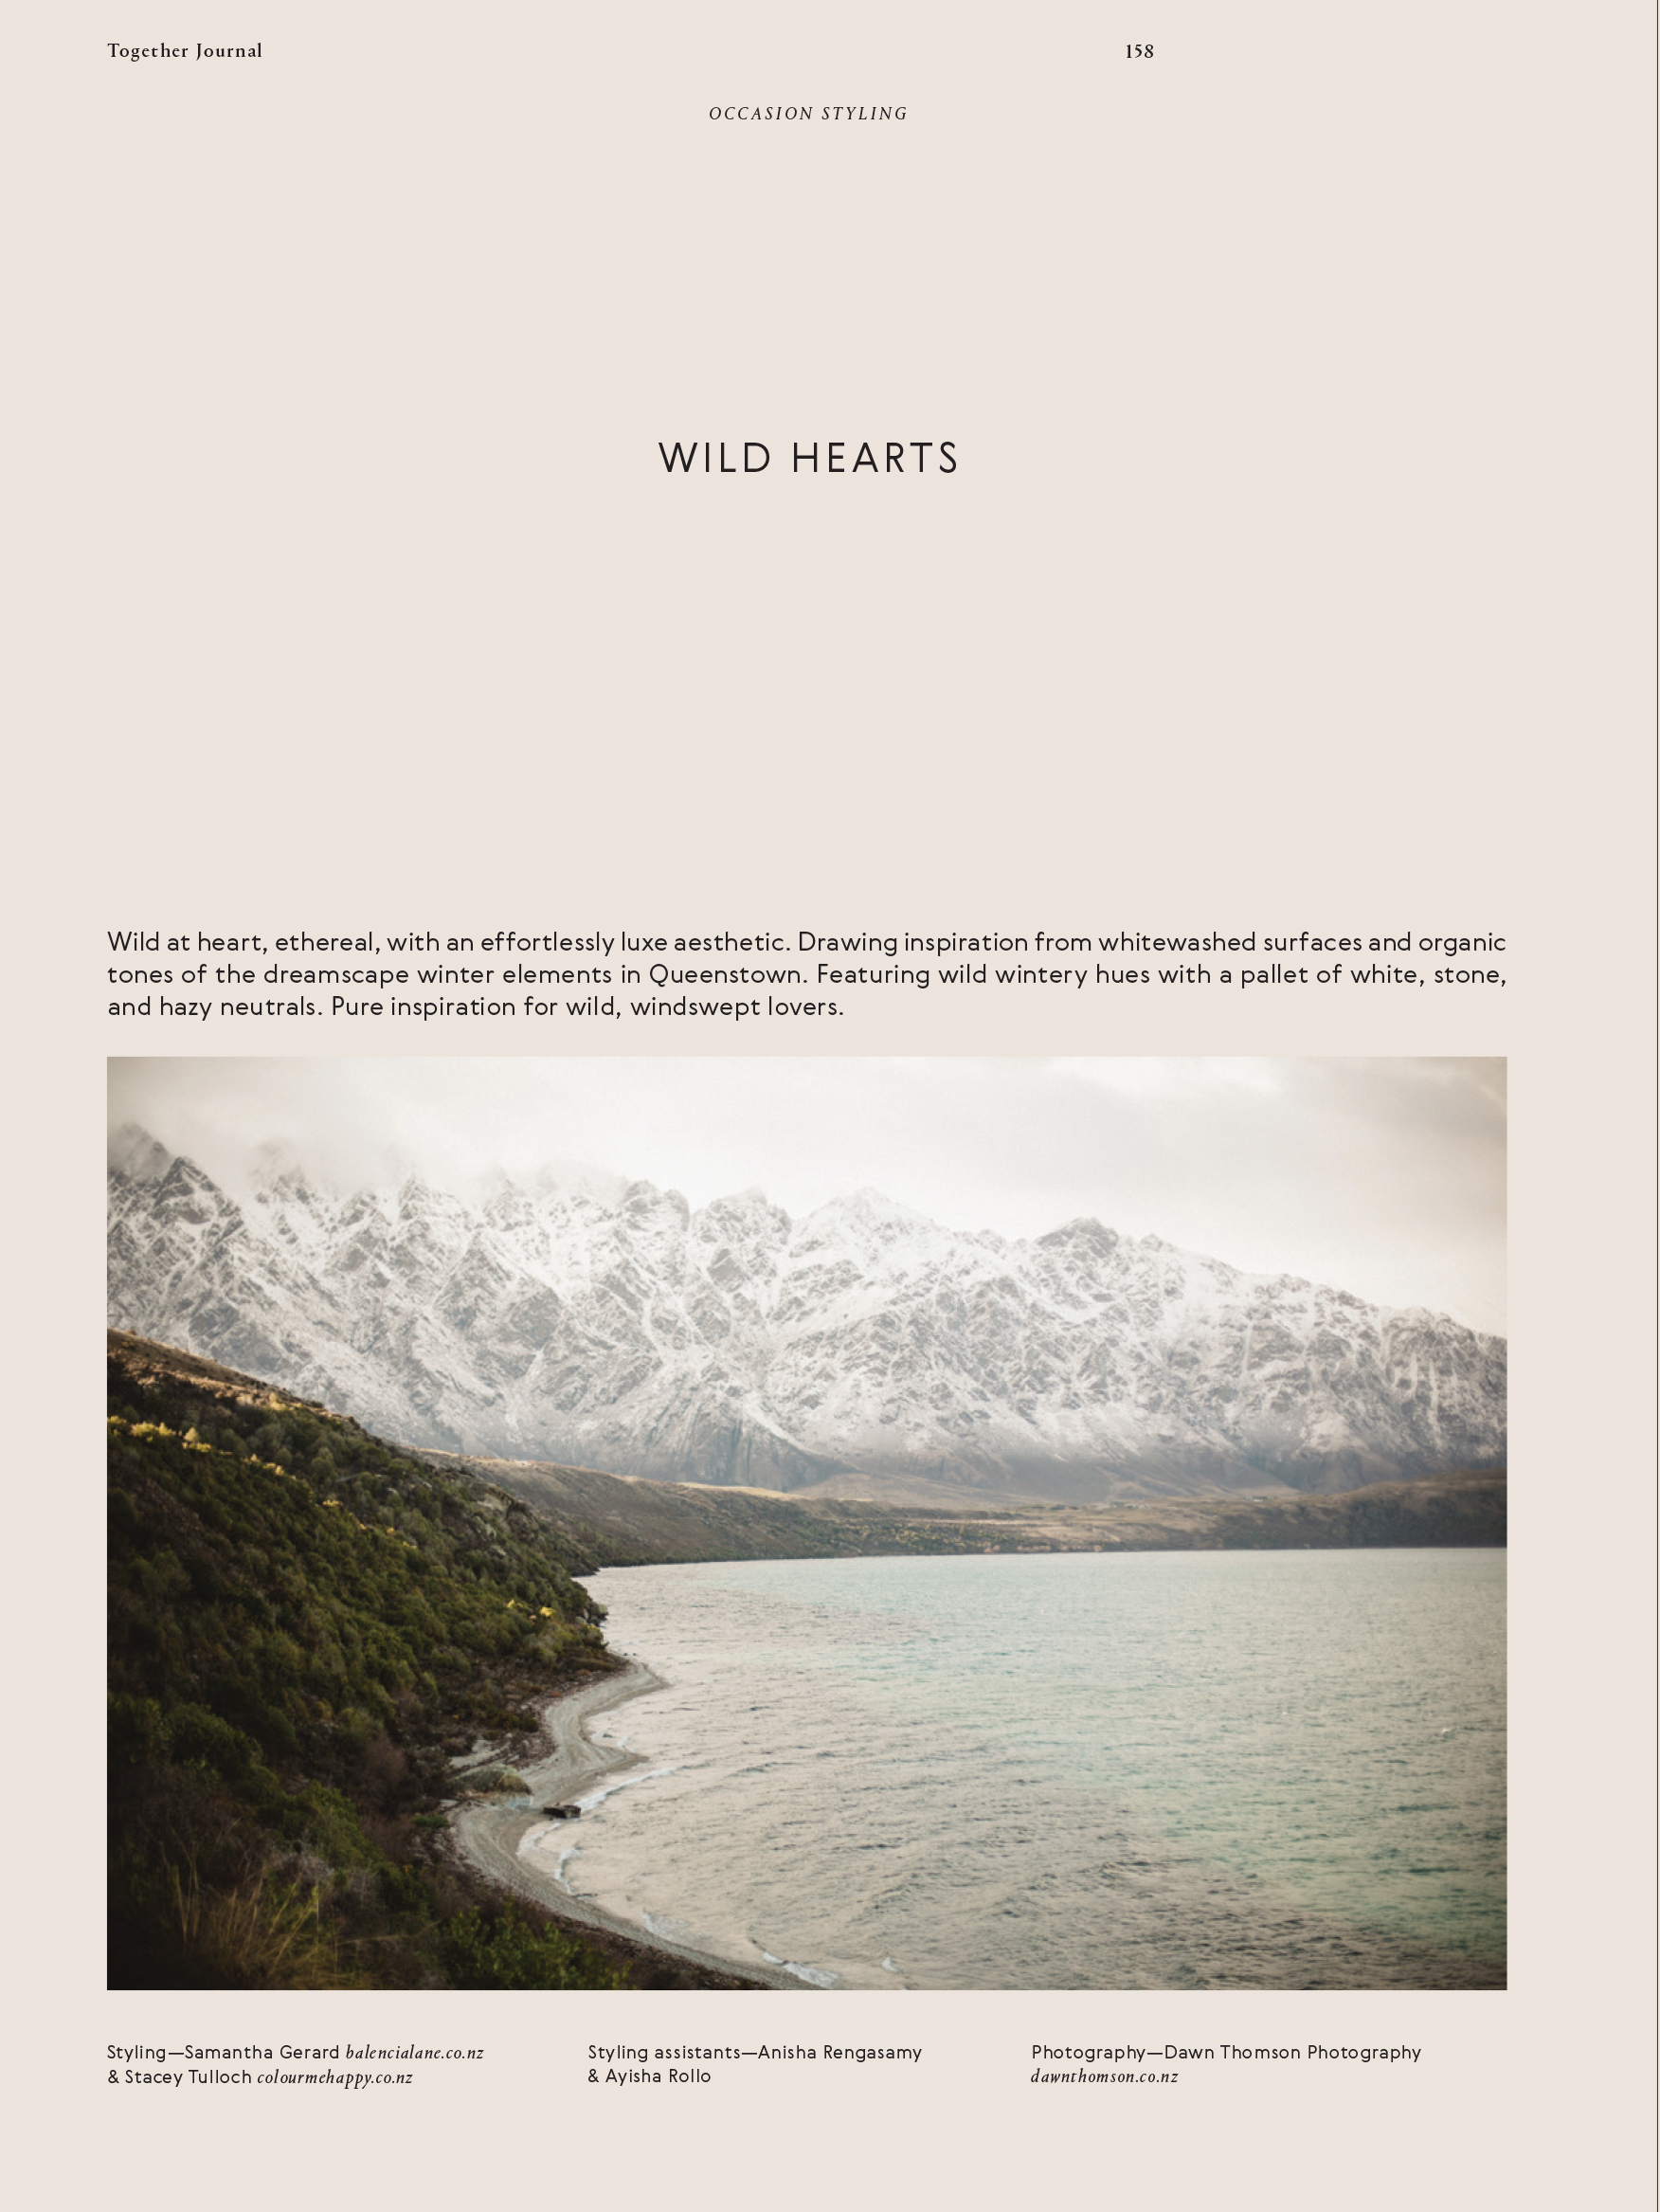 Categories: Inspiration, Weddings-Wild Hearts Occasion Styling Issue 5